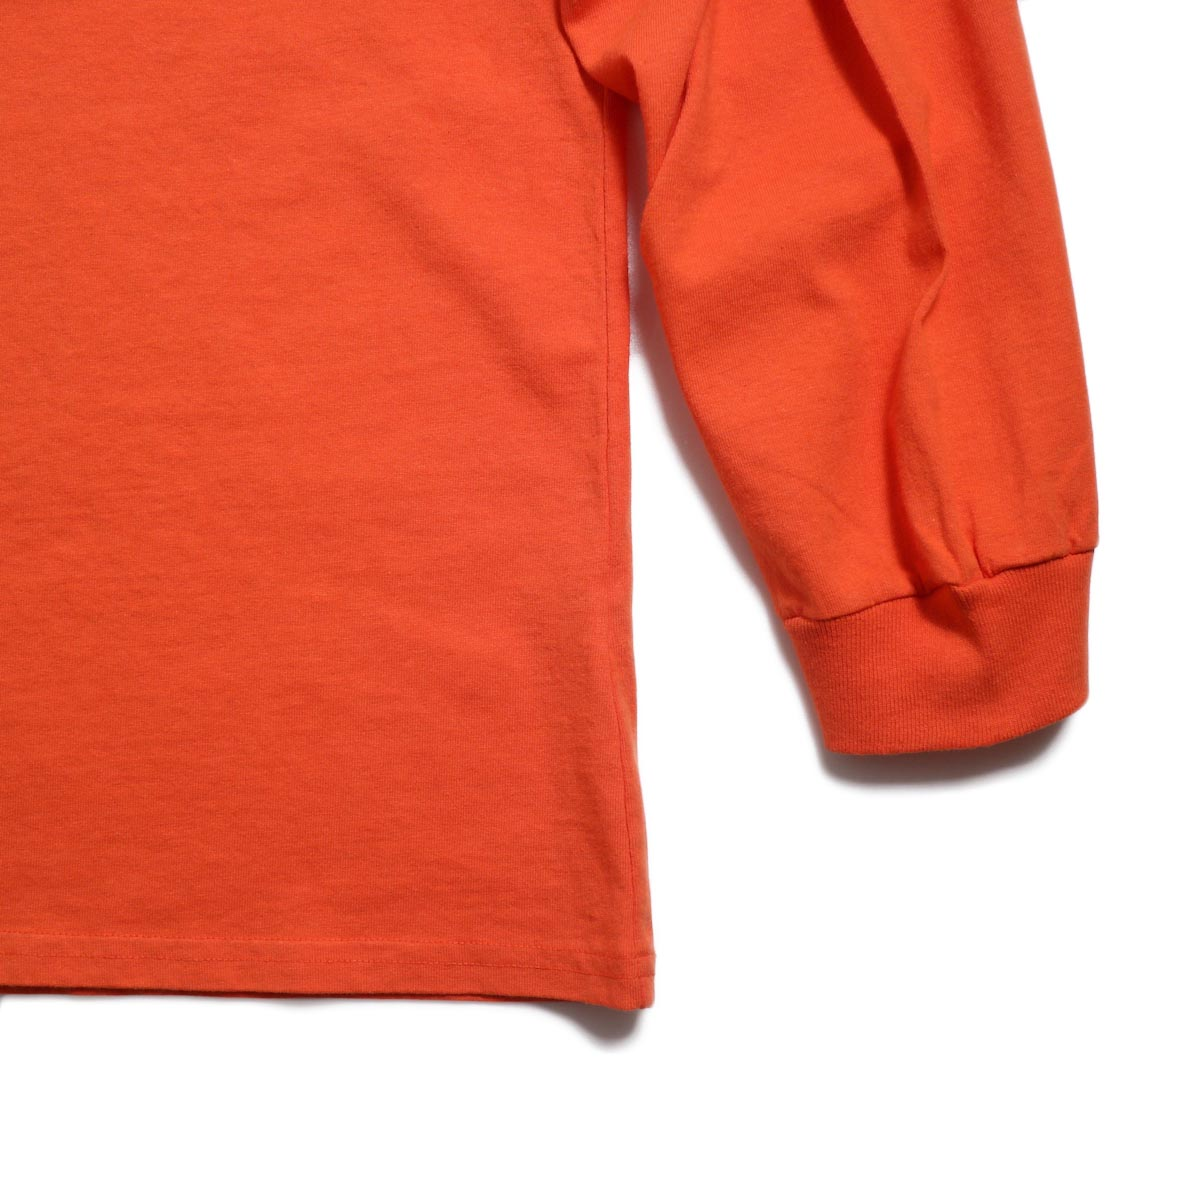 UNIVERSAL PRODUCTS / Heavy Weight L/S T-Shirt -Orange 裾、袖